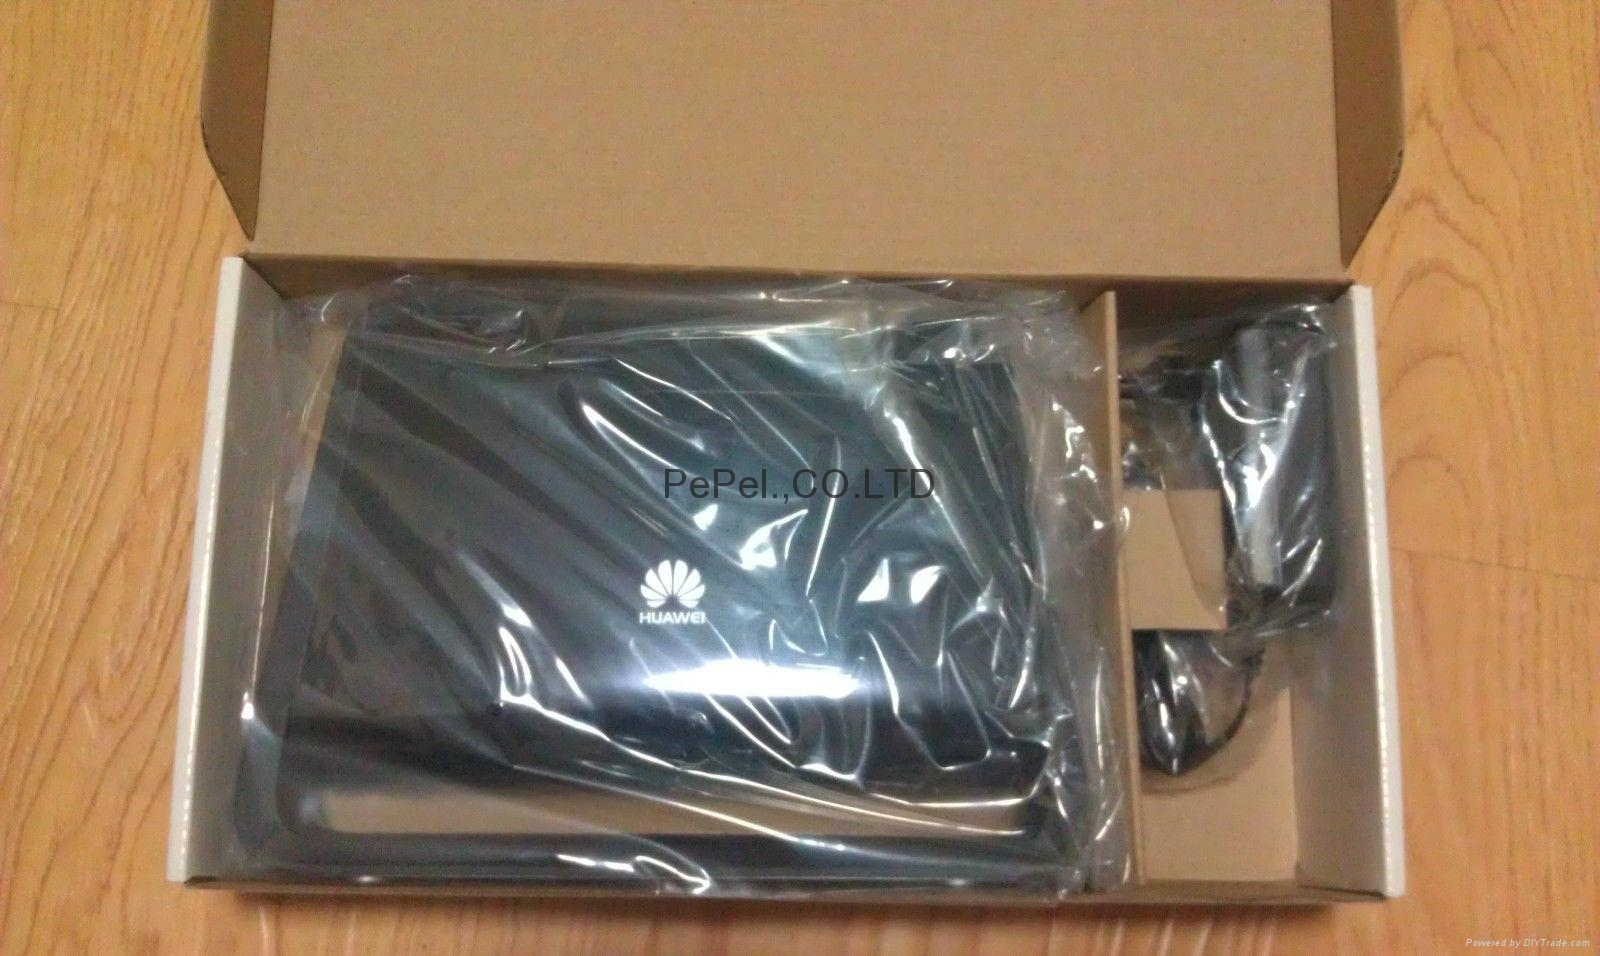 Huawei B890-66 4G LTE CPE Wireless  Router 1